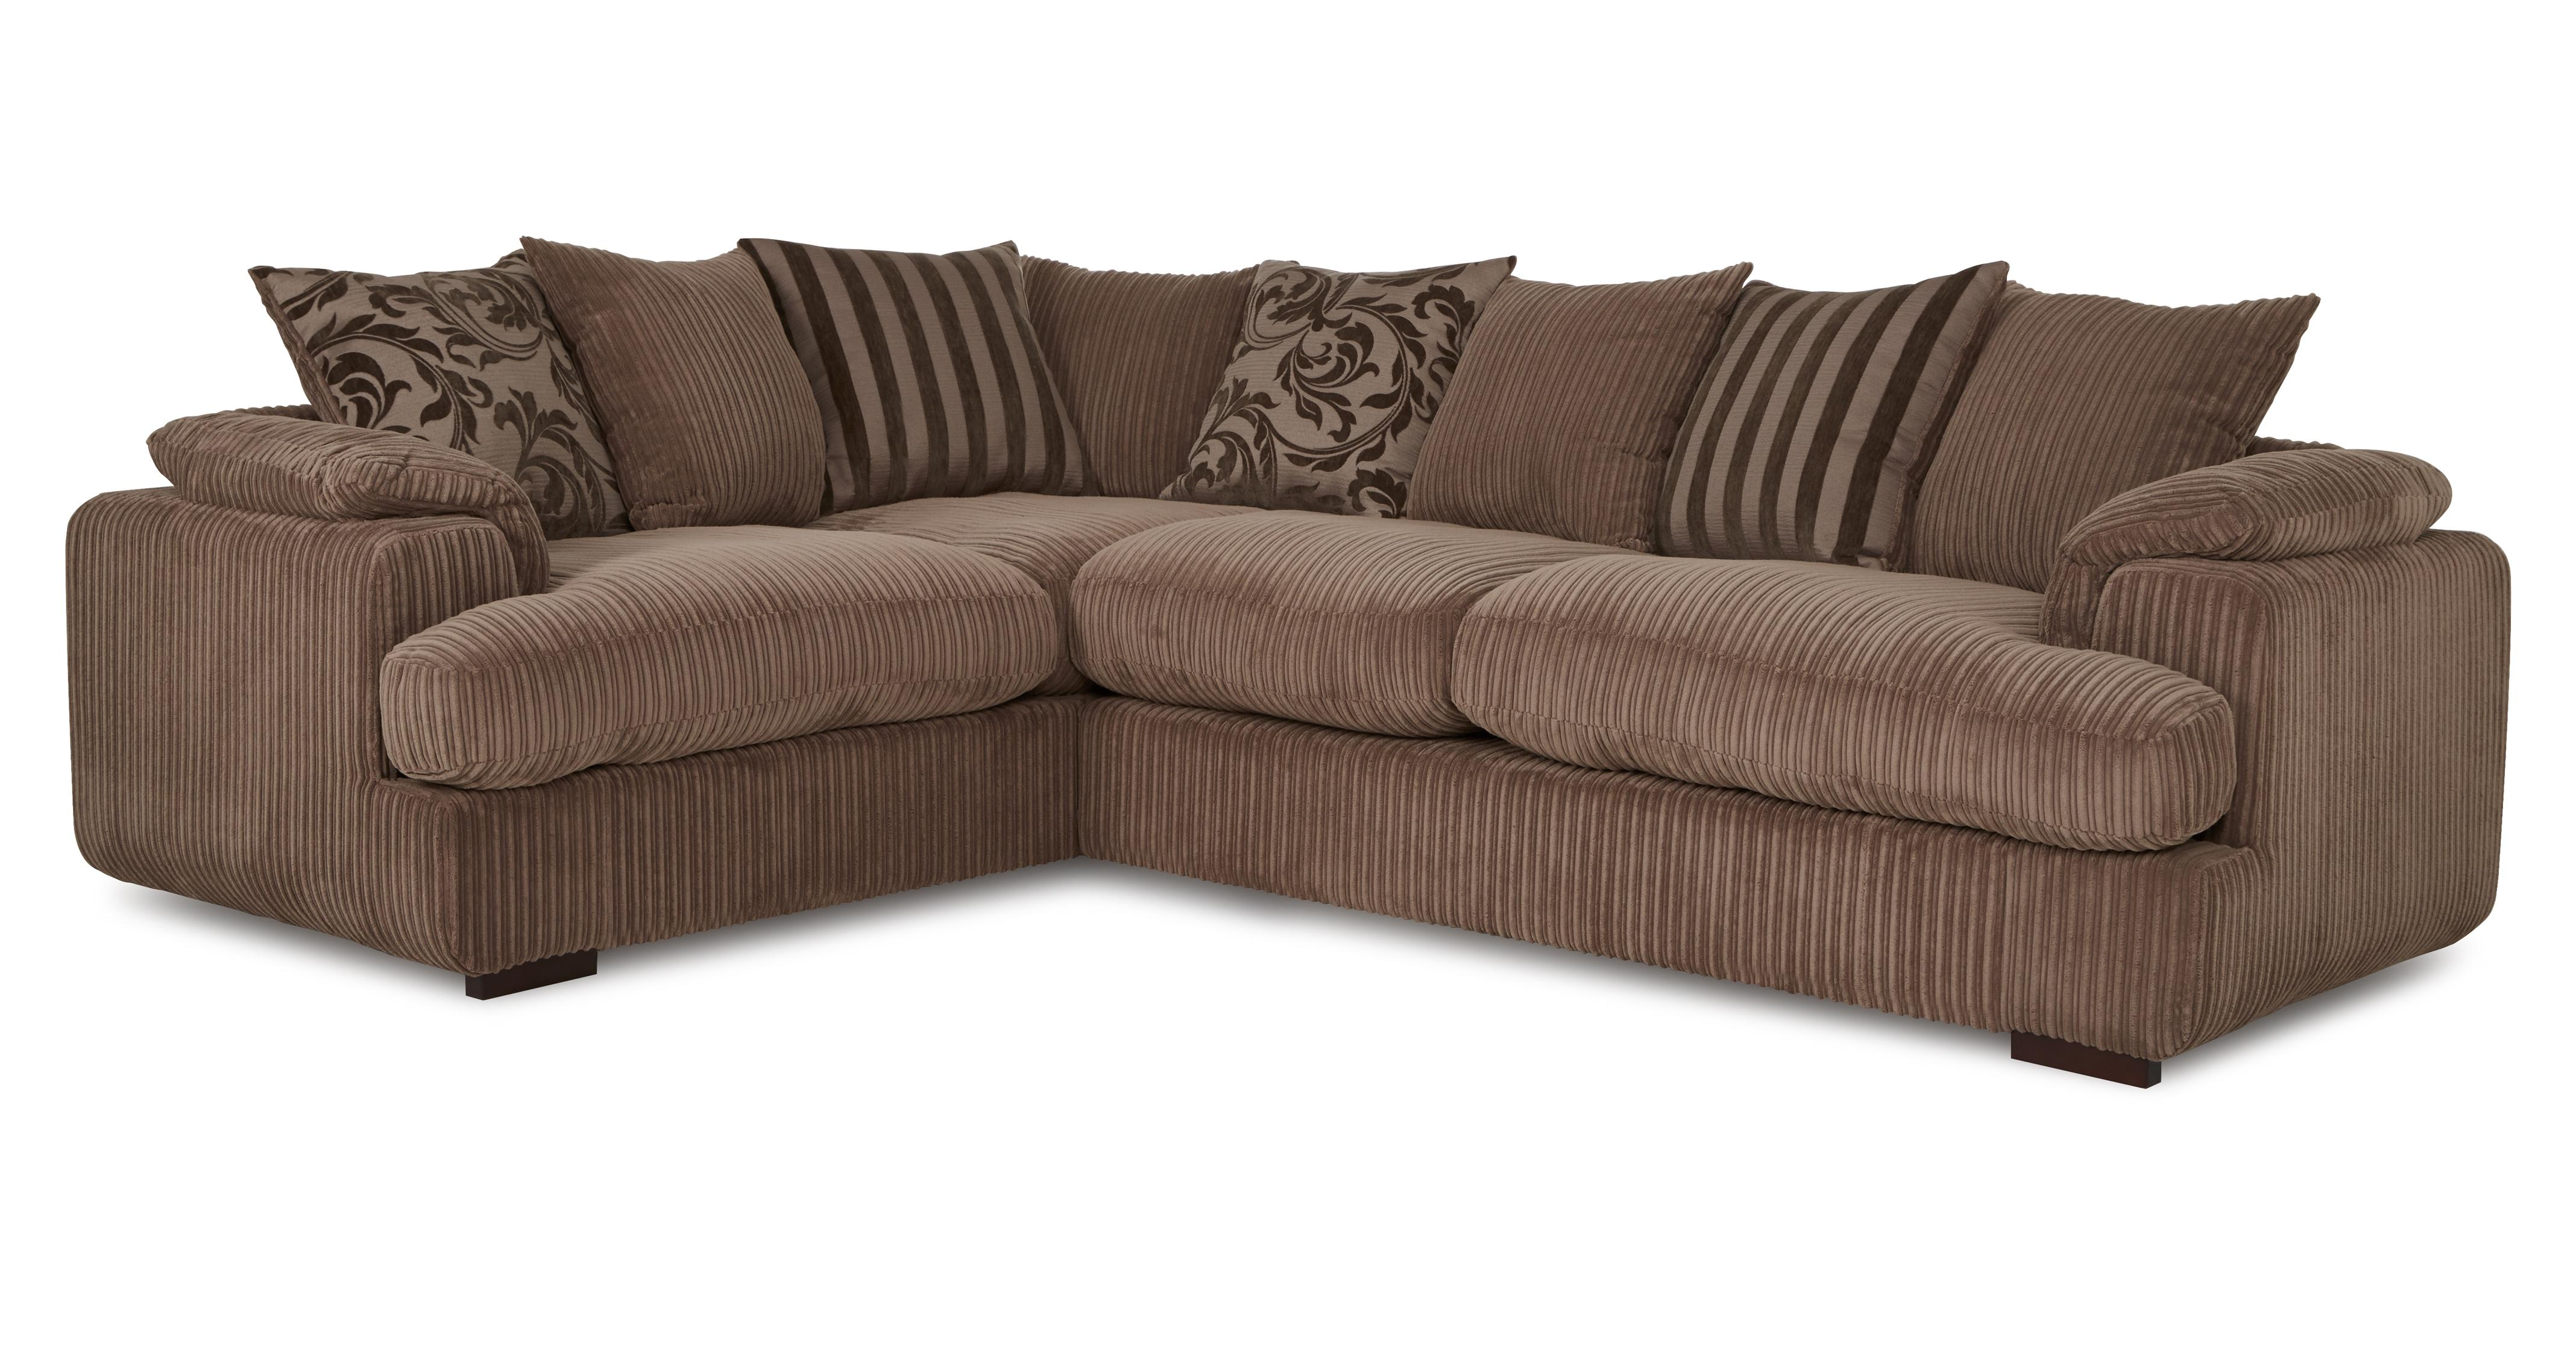 Celine Right Arm Facing 2 Seater Pillow Back Corner Sofa DFS